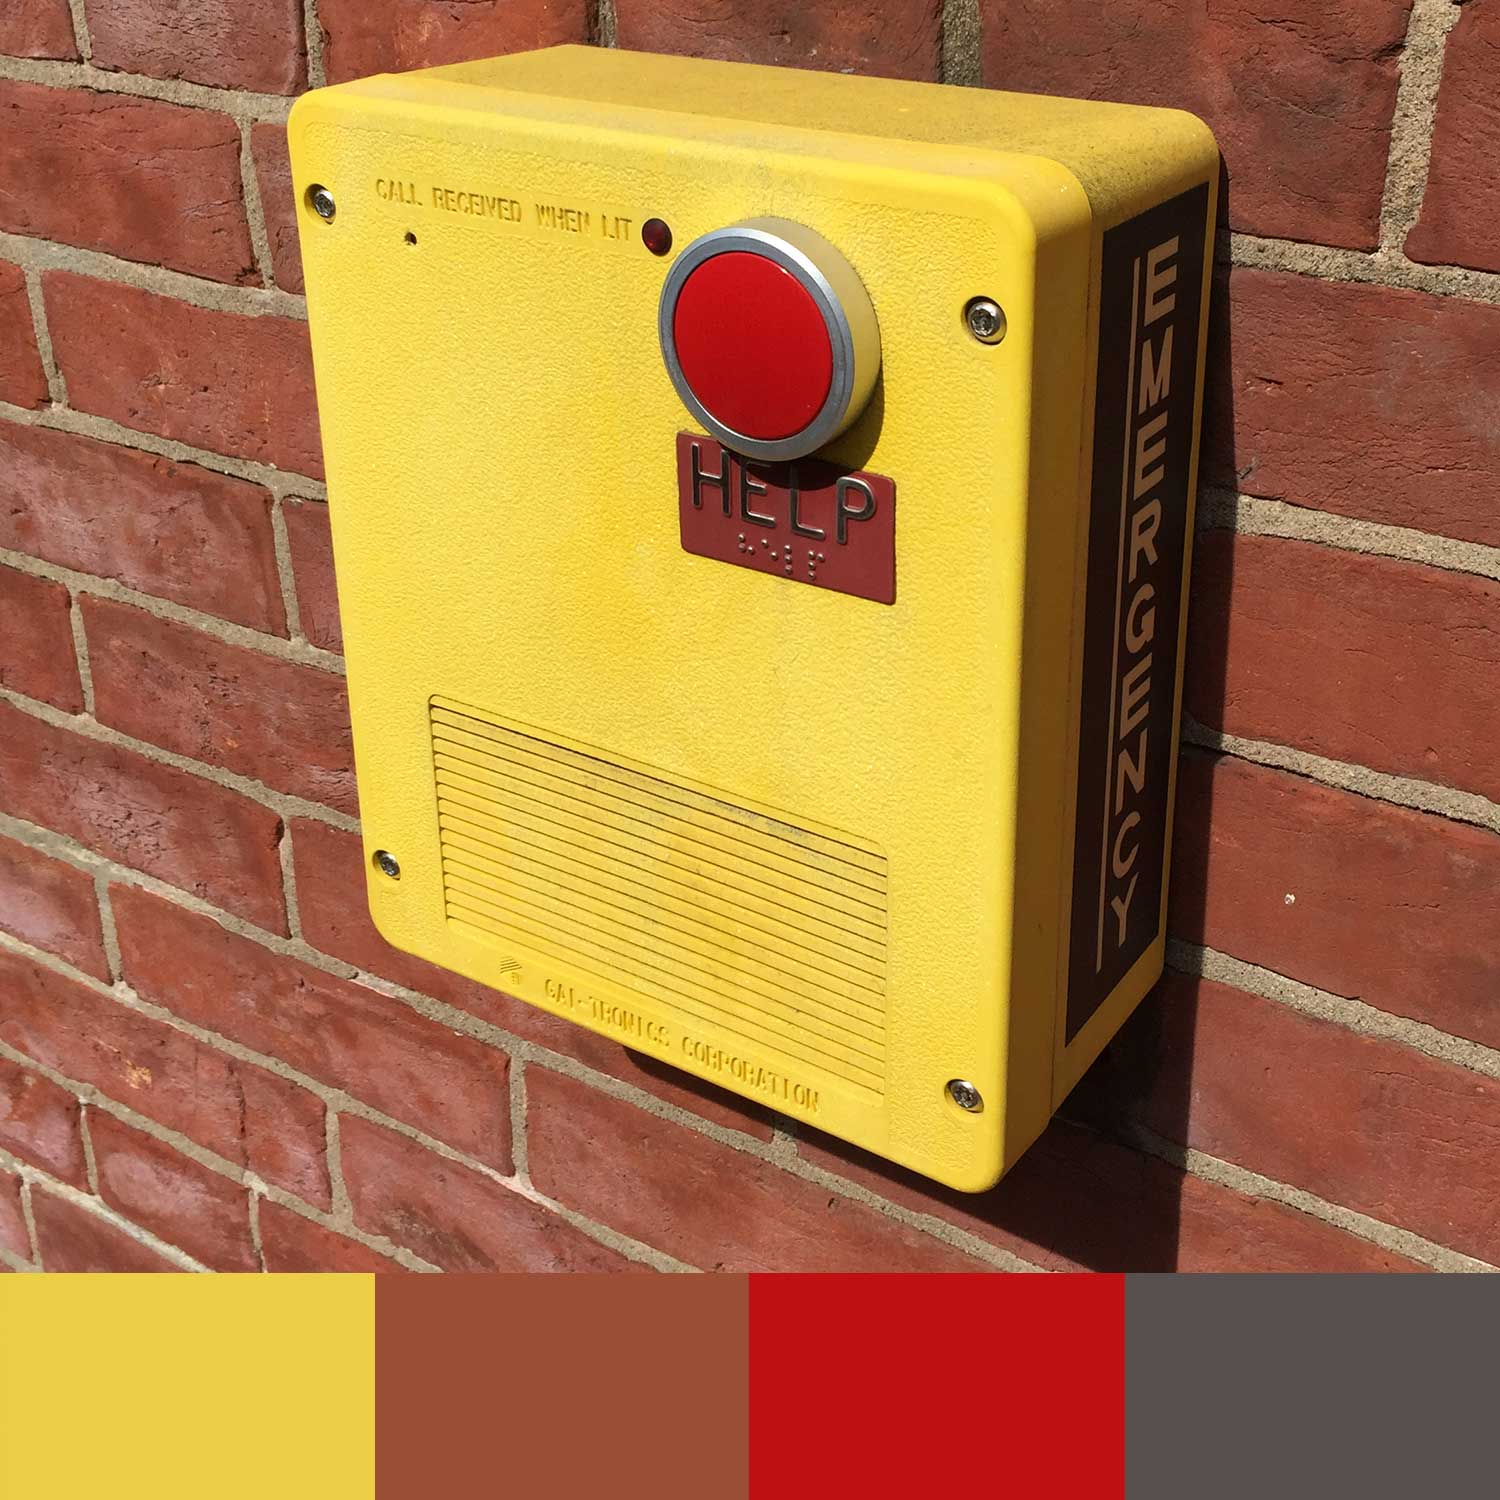 Bright yellow and red emergency box